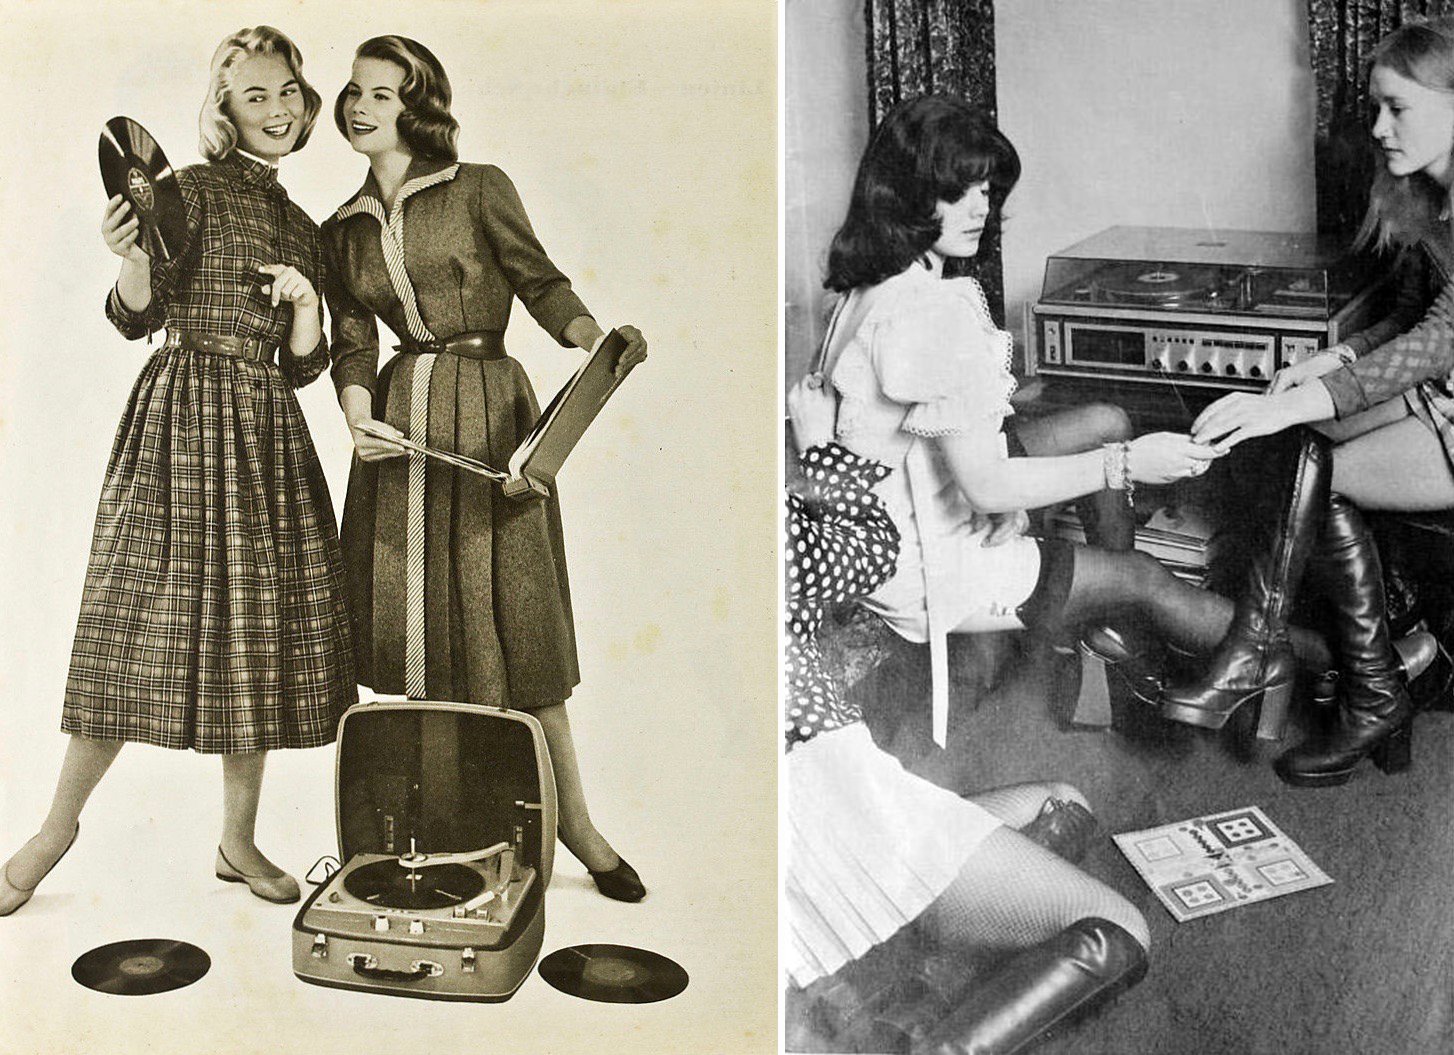 vintage-ladies-and-records-104